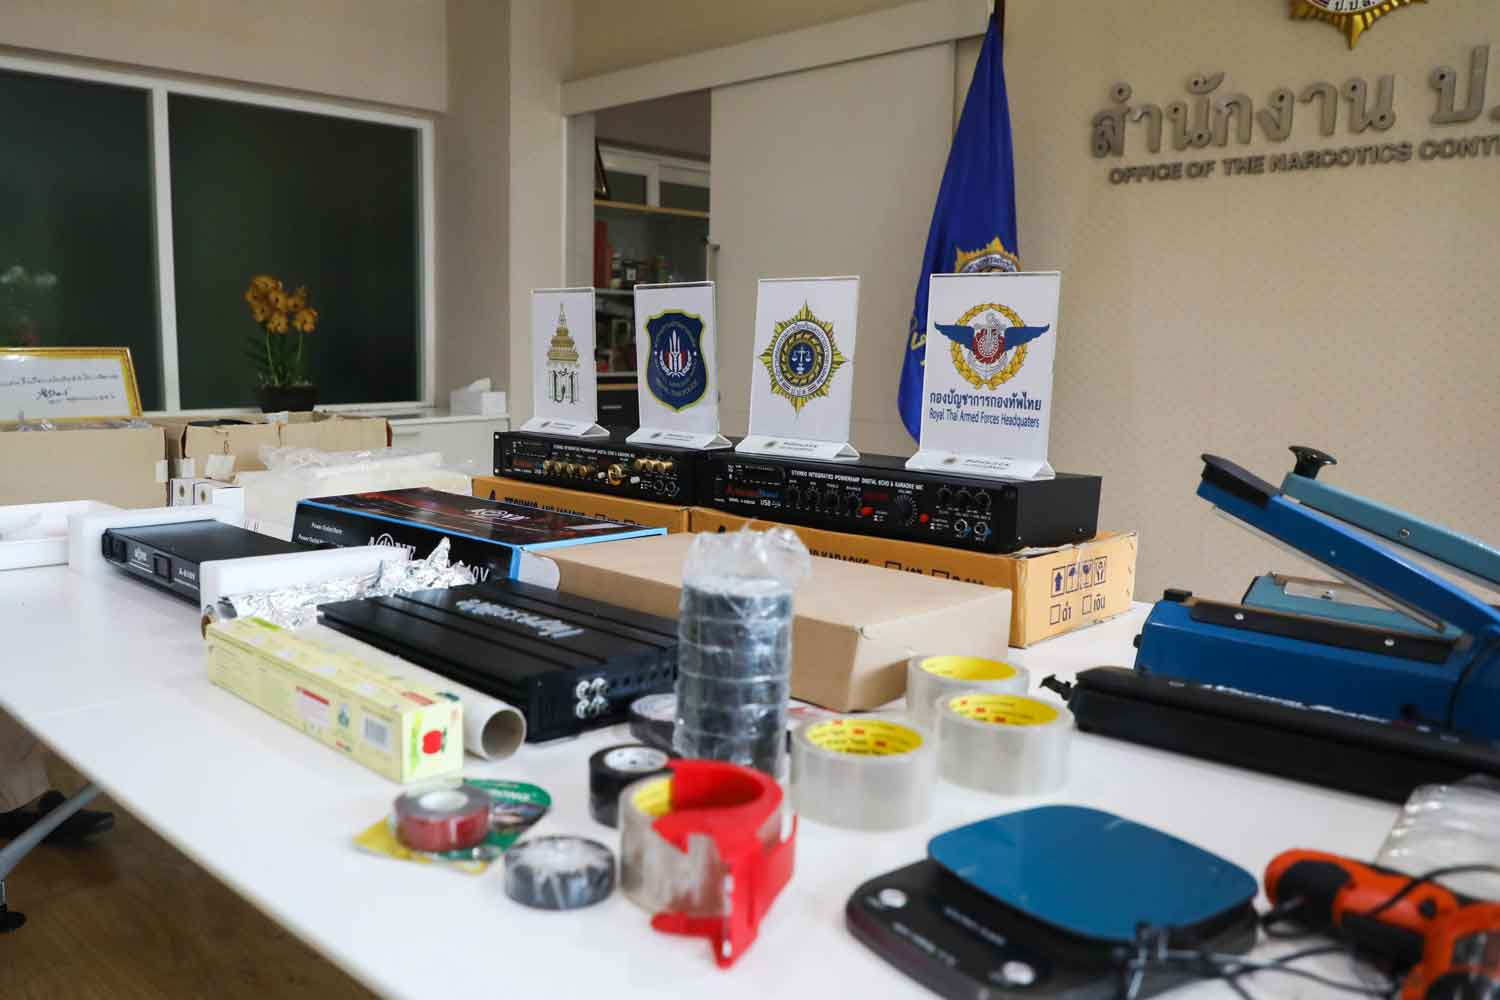 Officials show amplifiers and packaging tools seized from Singaporean drug suspect Teo Zhi Jiz, 27, at the Office of the Narcotics Control Board on Thursday. (Photo supplied)